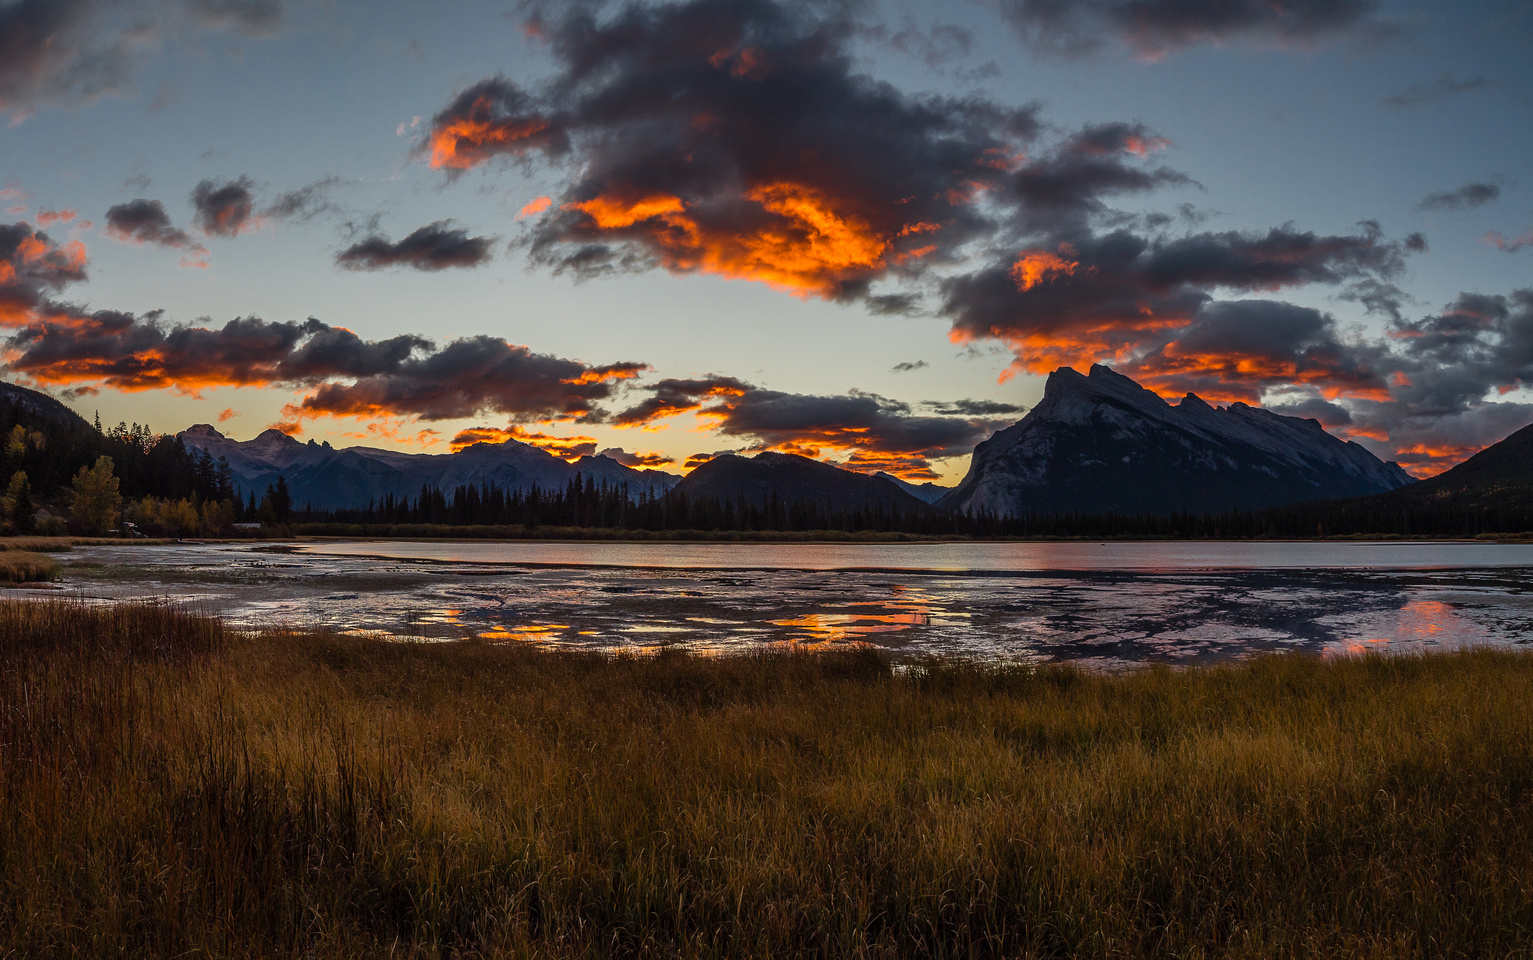 My day started pretty good with a beautiful sunrise over Mount Rundle.